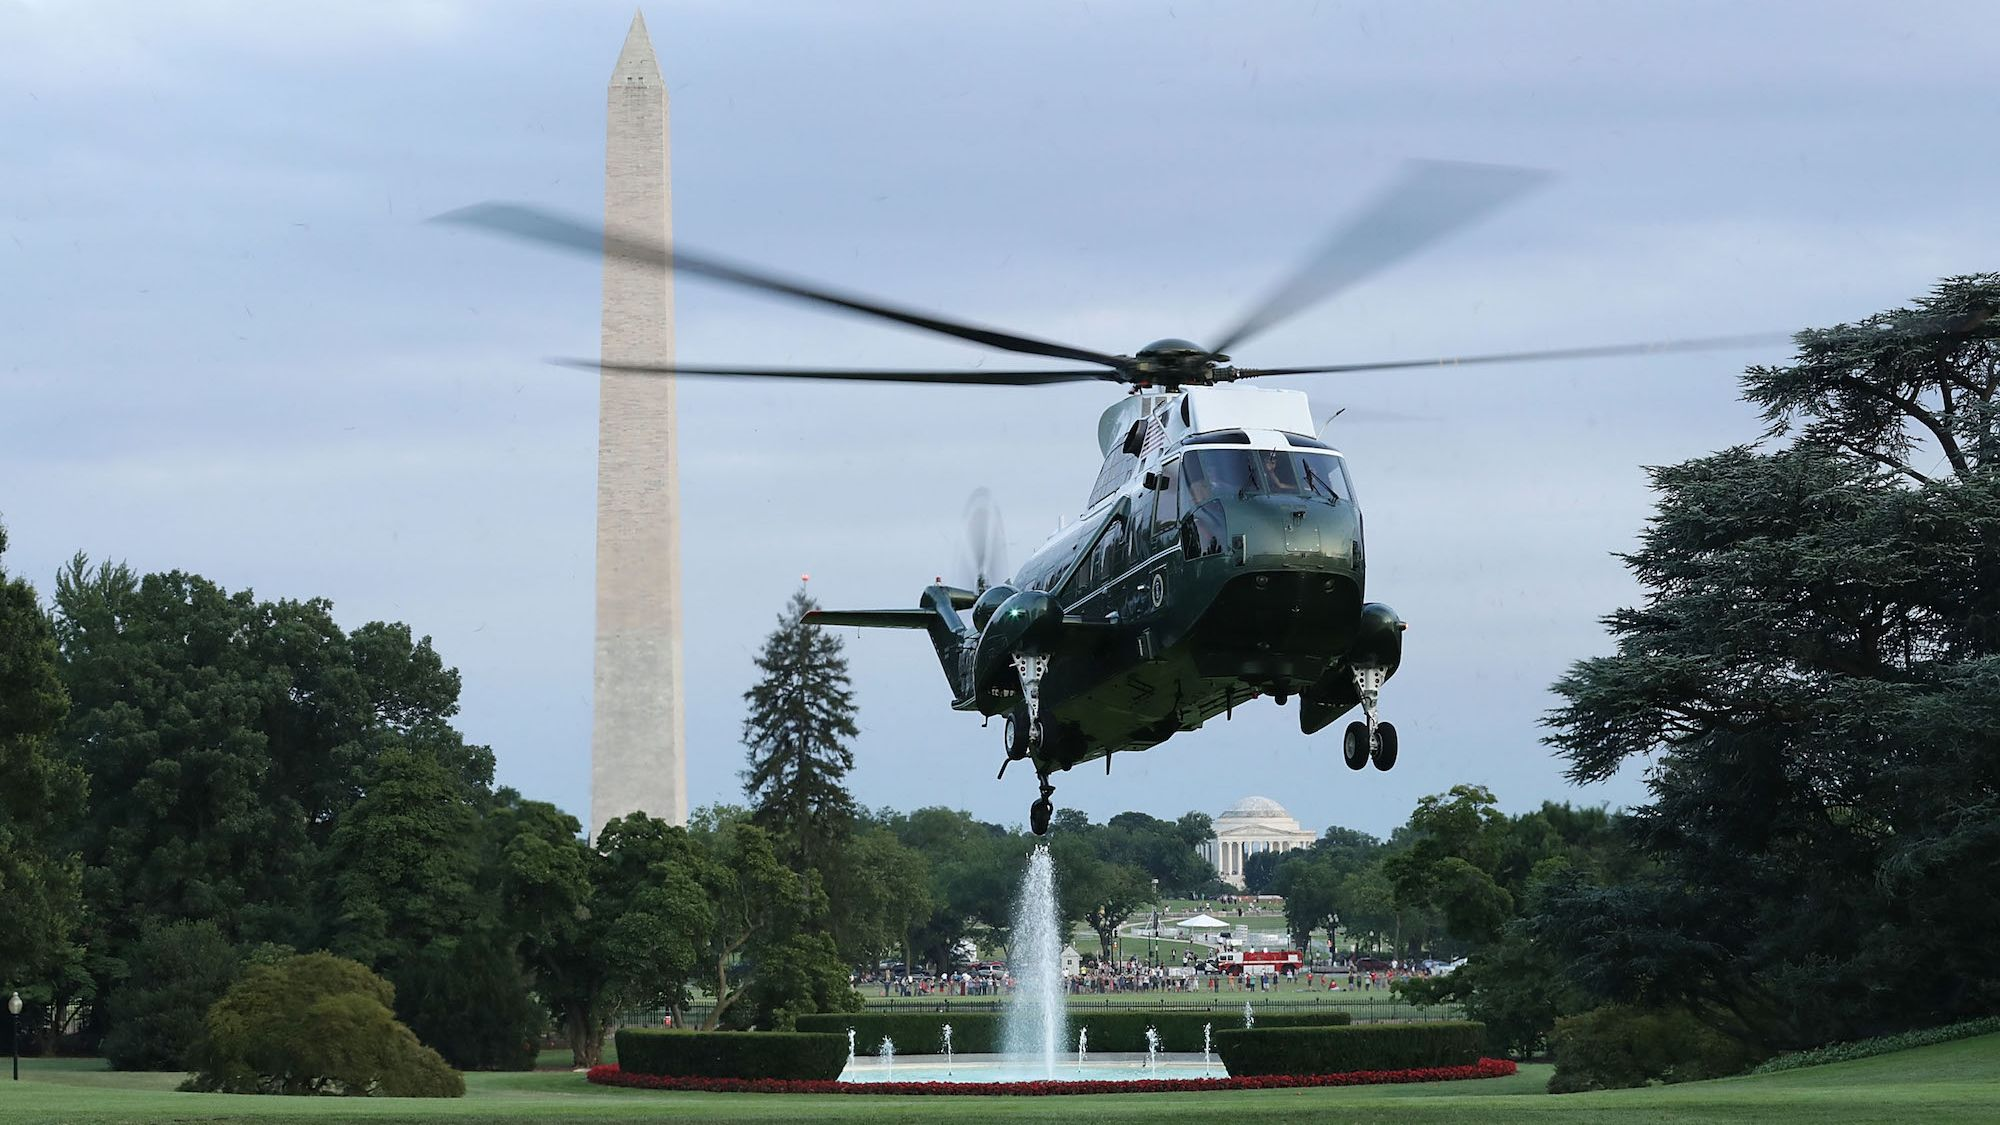 How Much Damage Does Marine One Cause to the White House Lawn When It Lands?